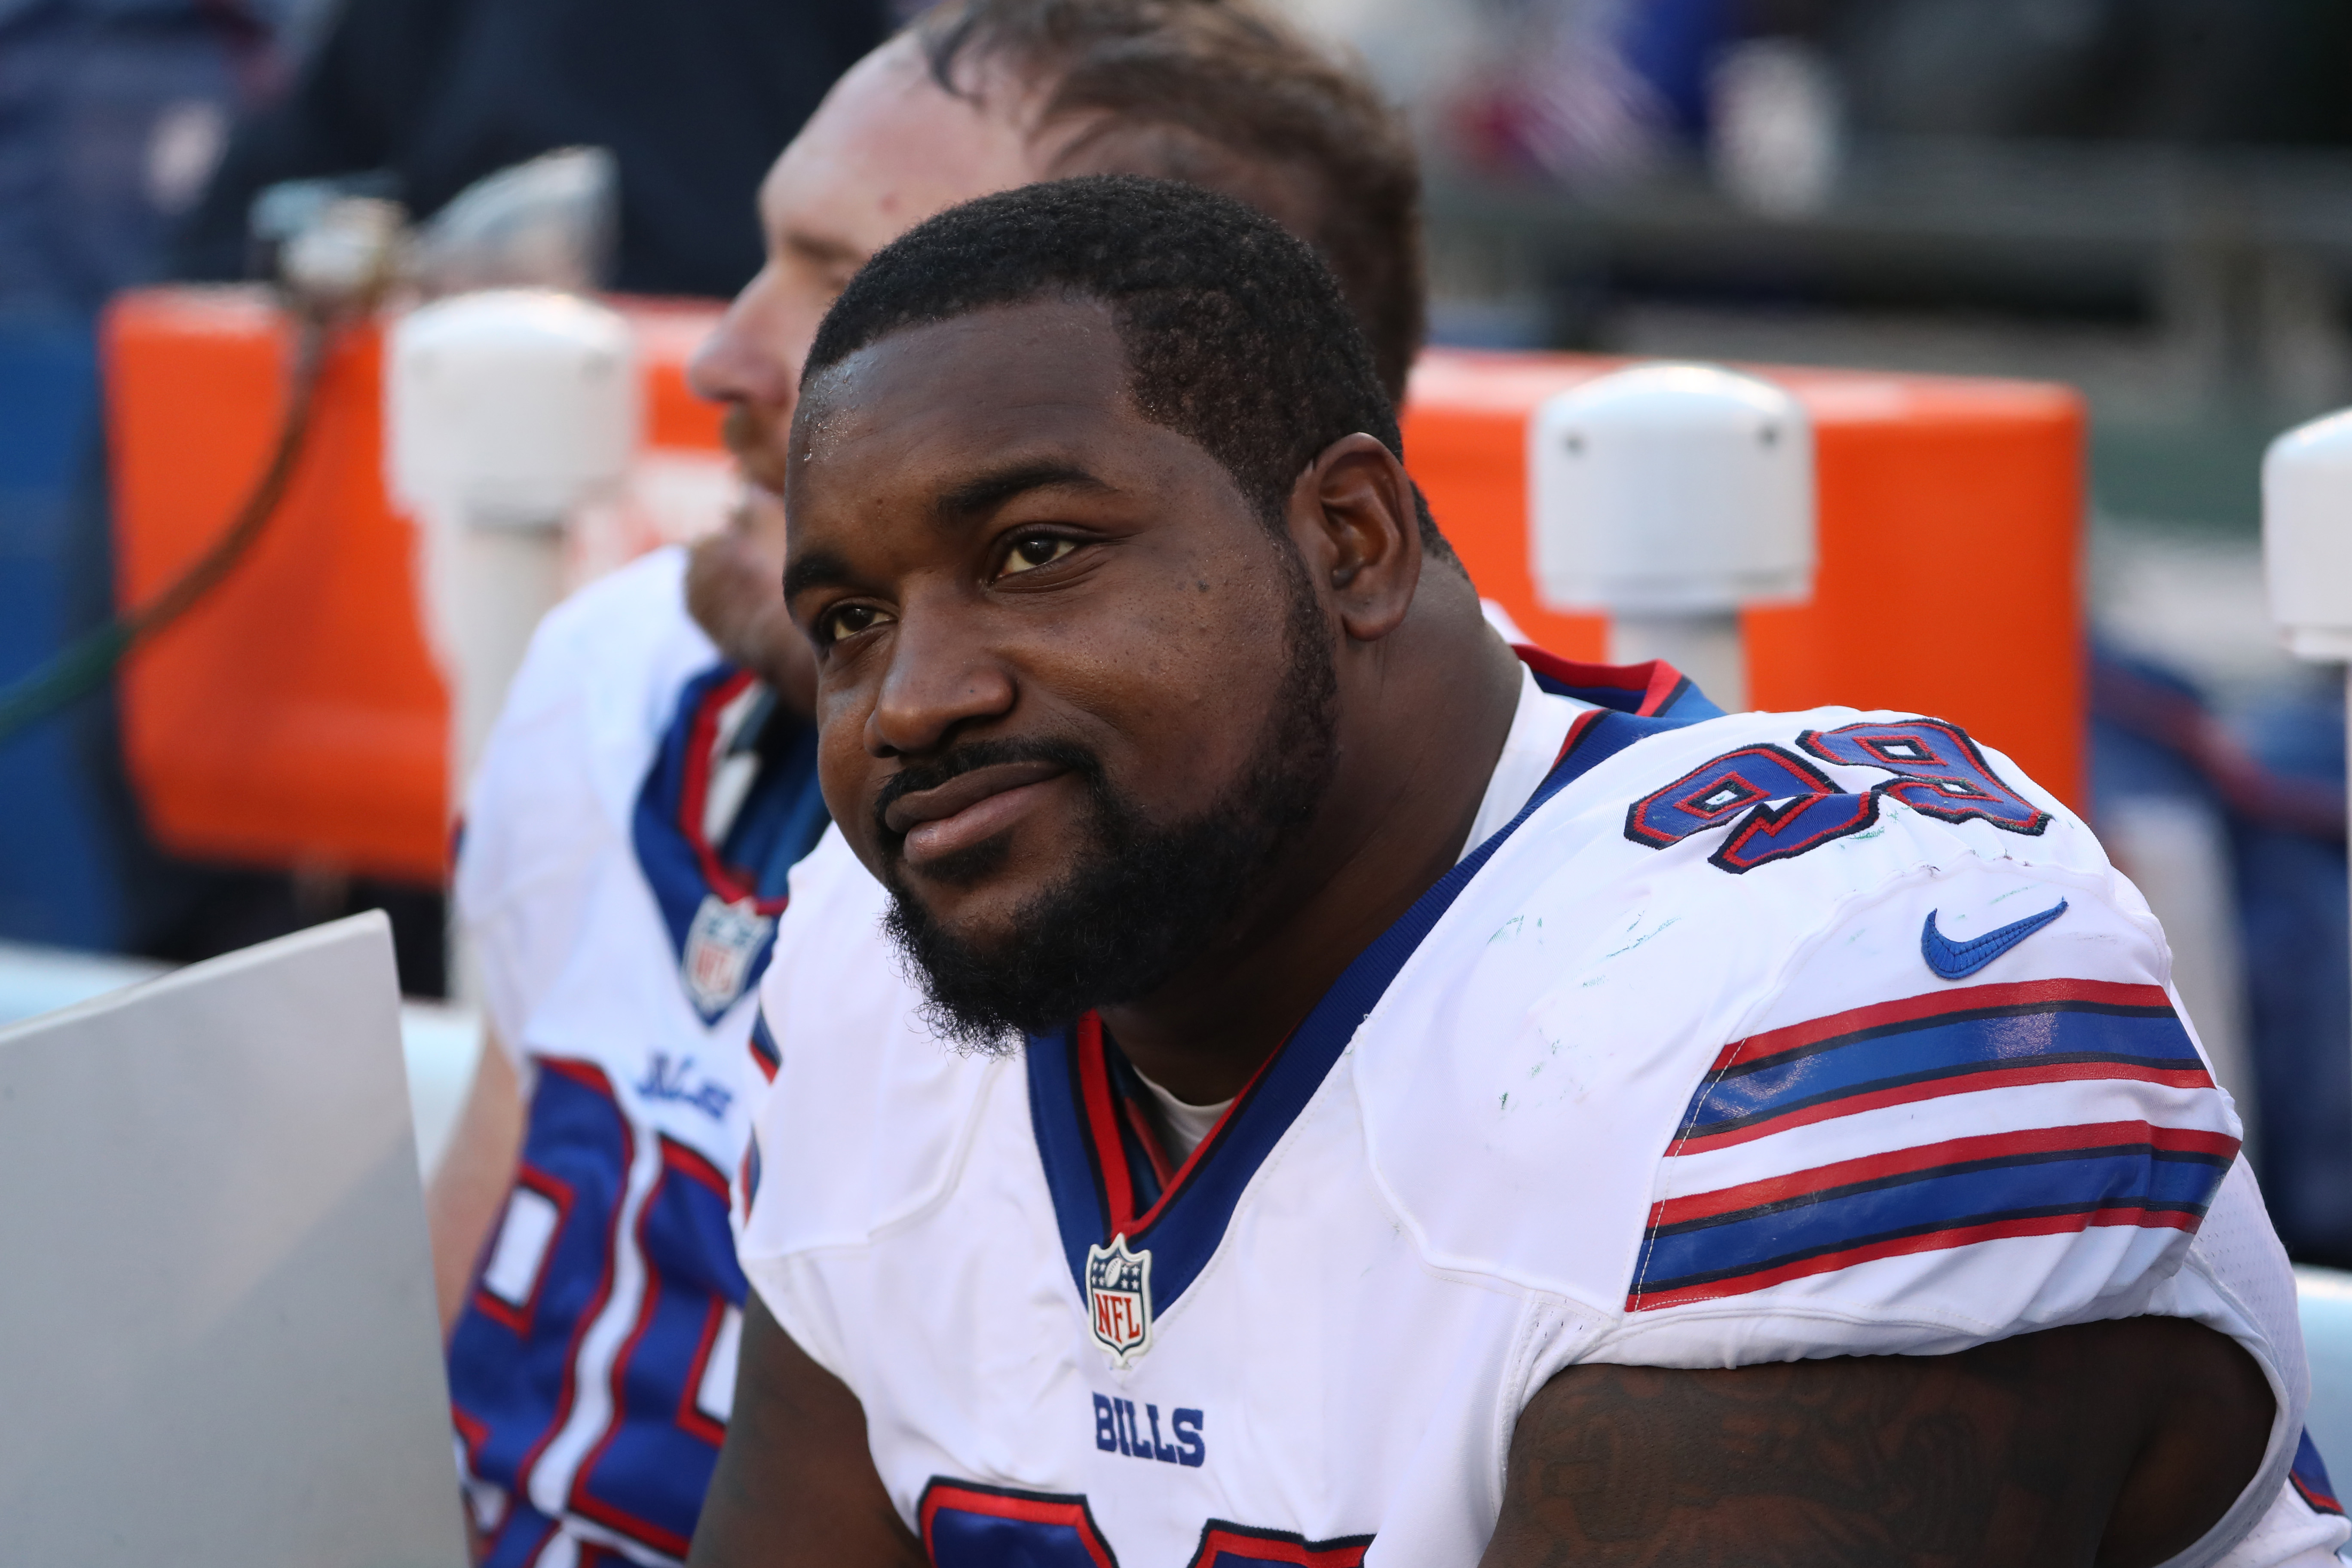 If the Bills are to exceed expectations in 2017, they'll need a big season from defensive tackle Marcell Dareus. (James P. McCoy/Buffalo News)